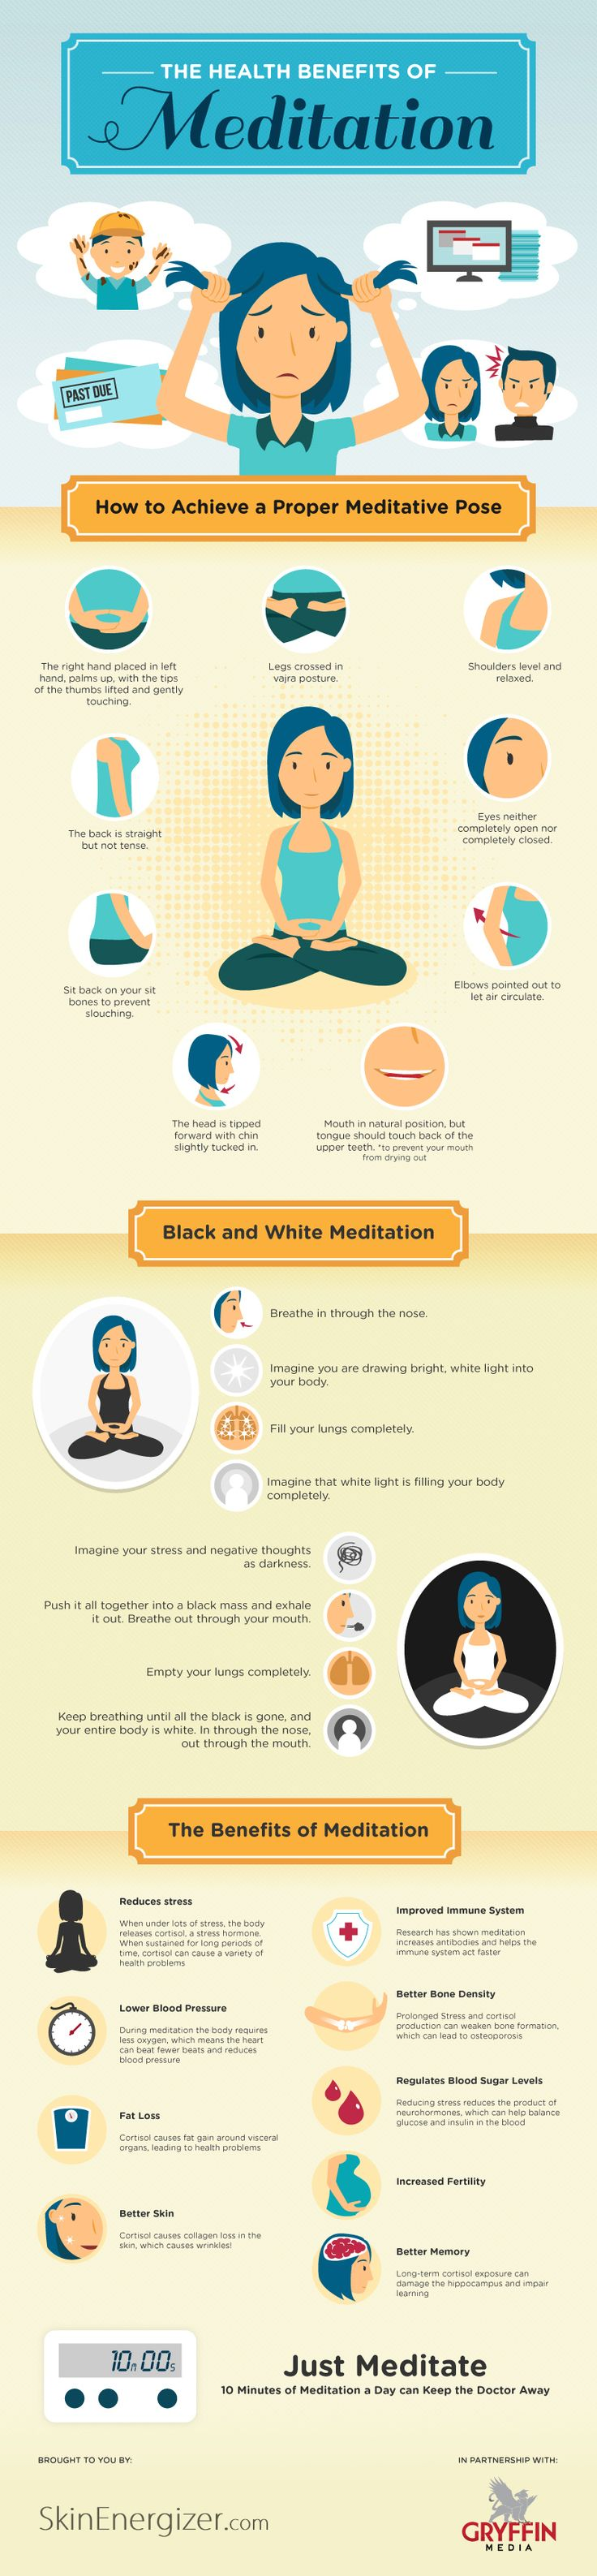 The Health Benefits of Meditation - WholesomeONE